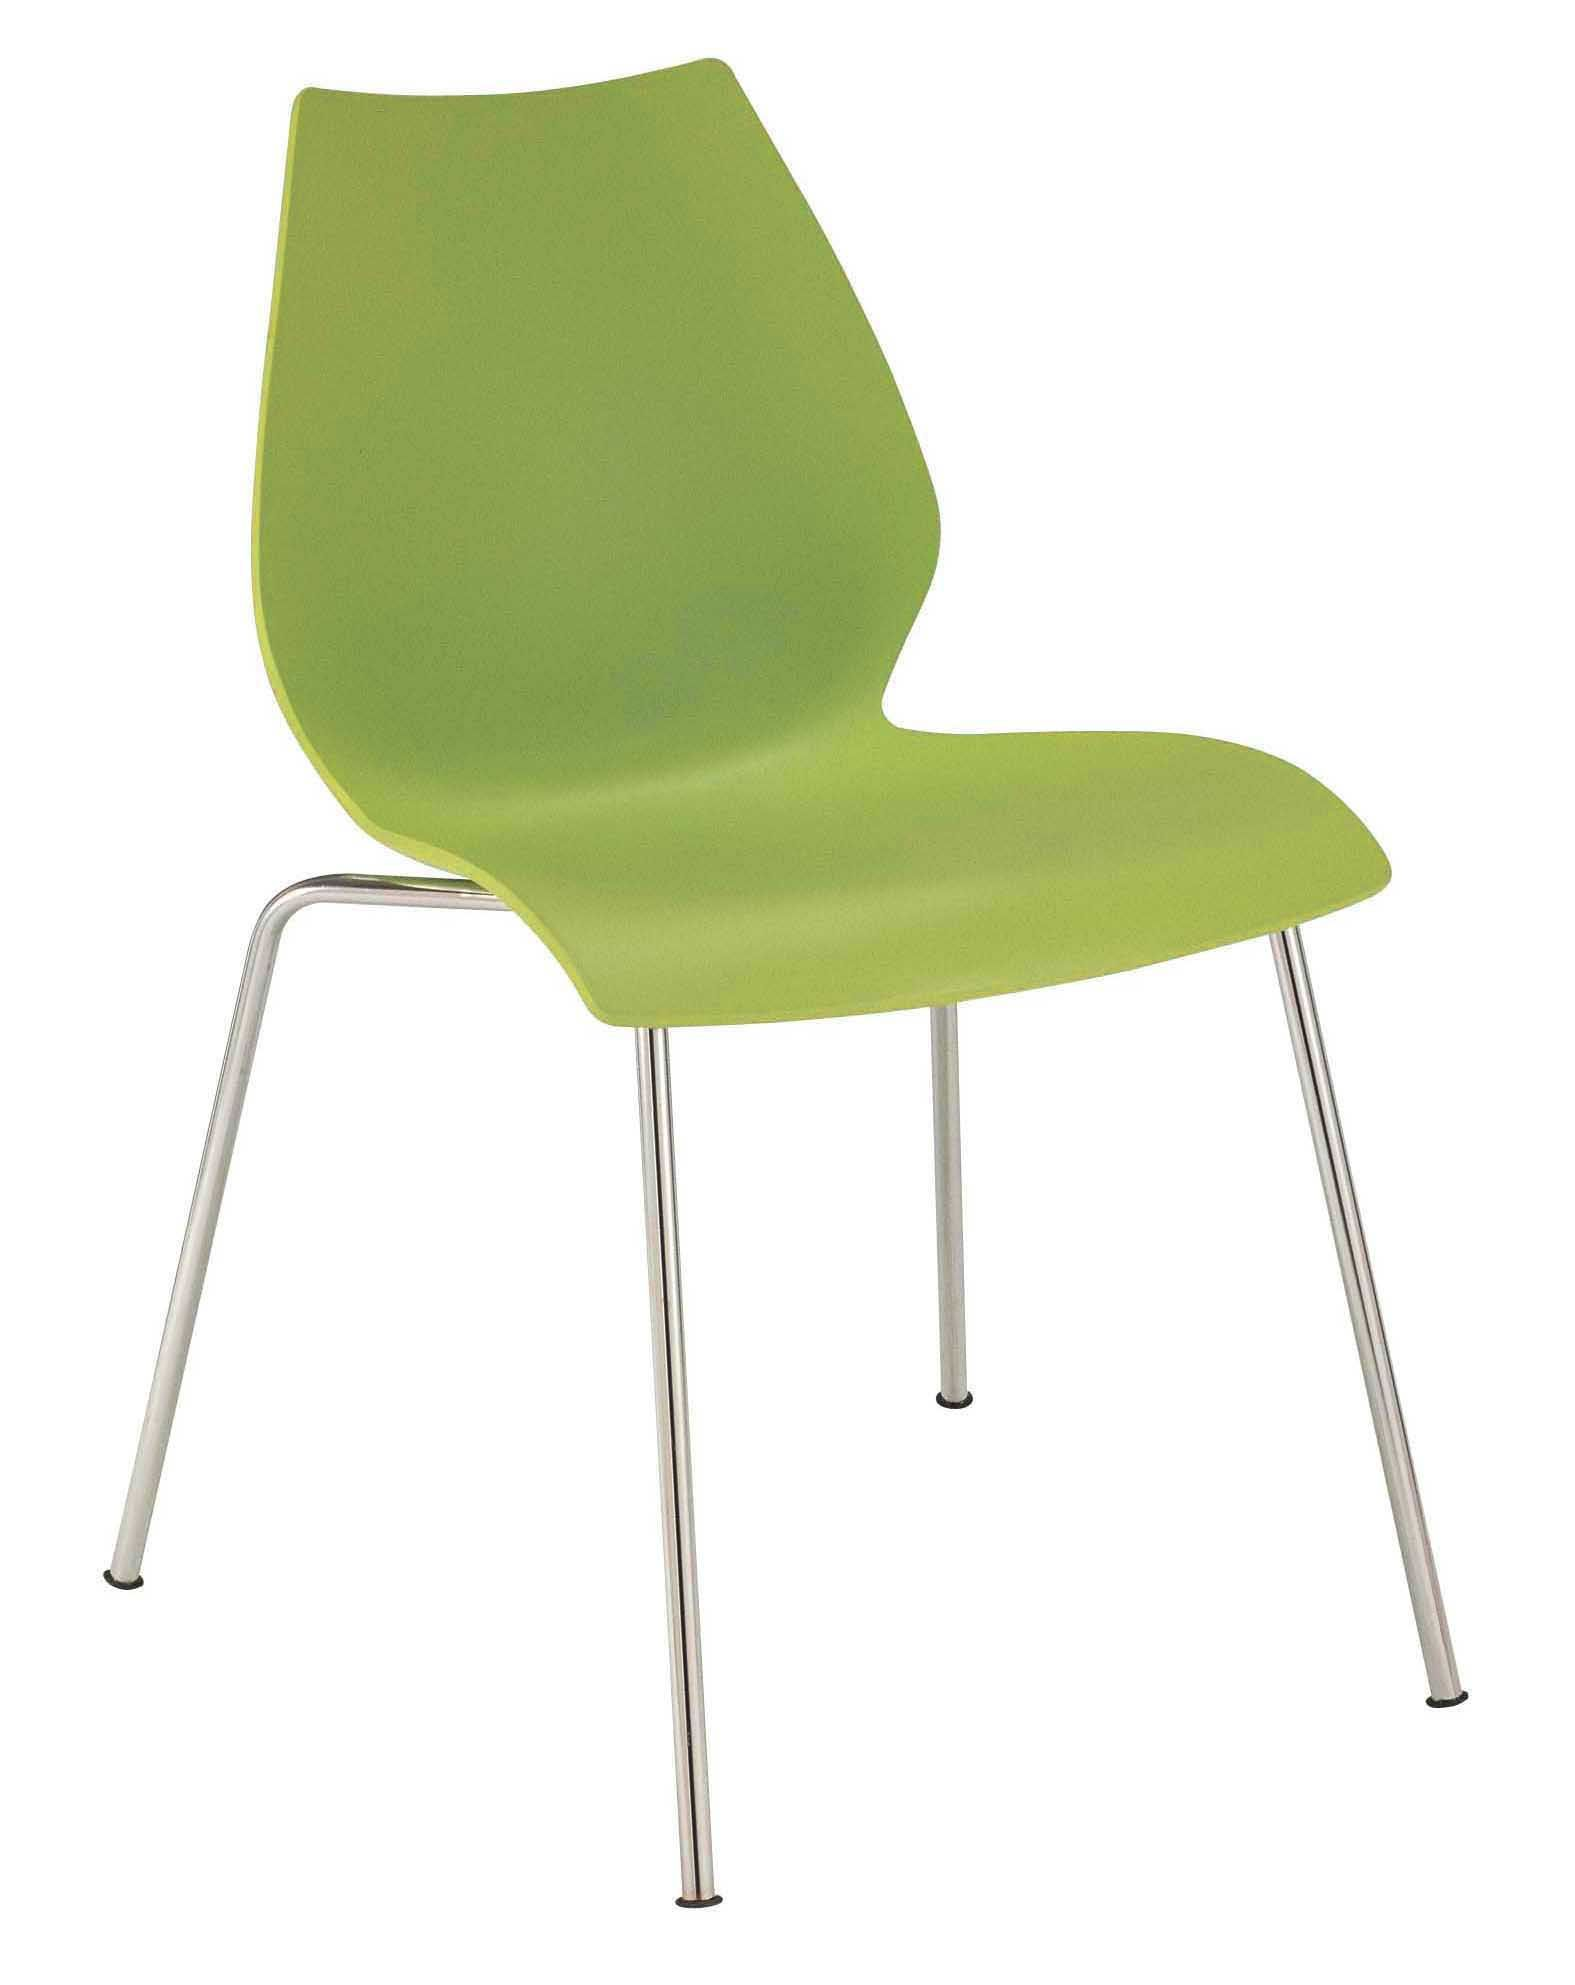 plastic chairs with steel legs co chair lift accident maui stackable seat and metal green by